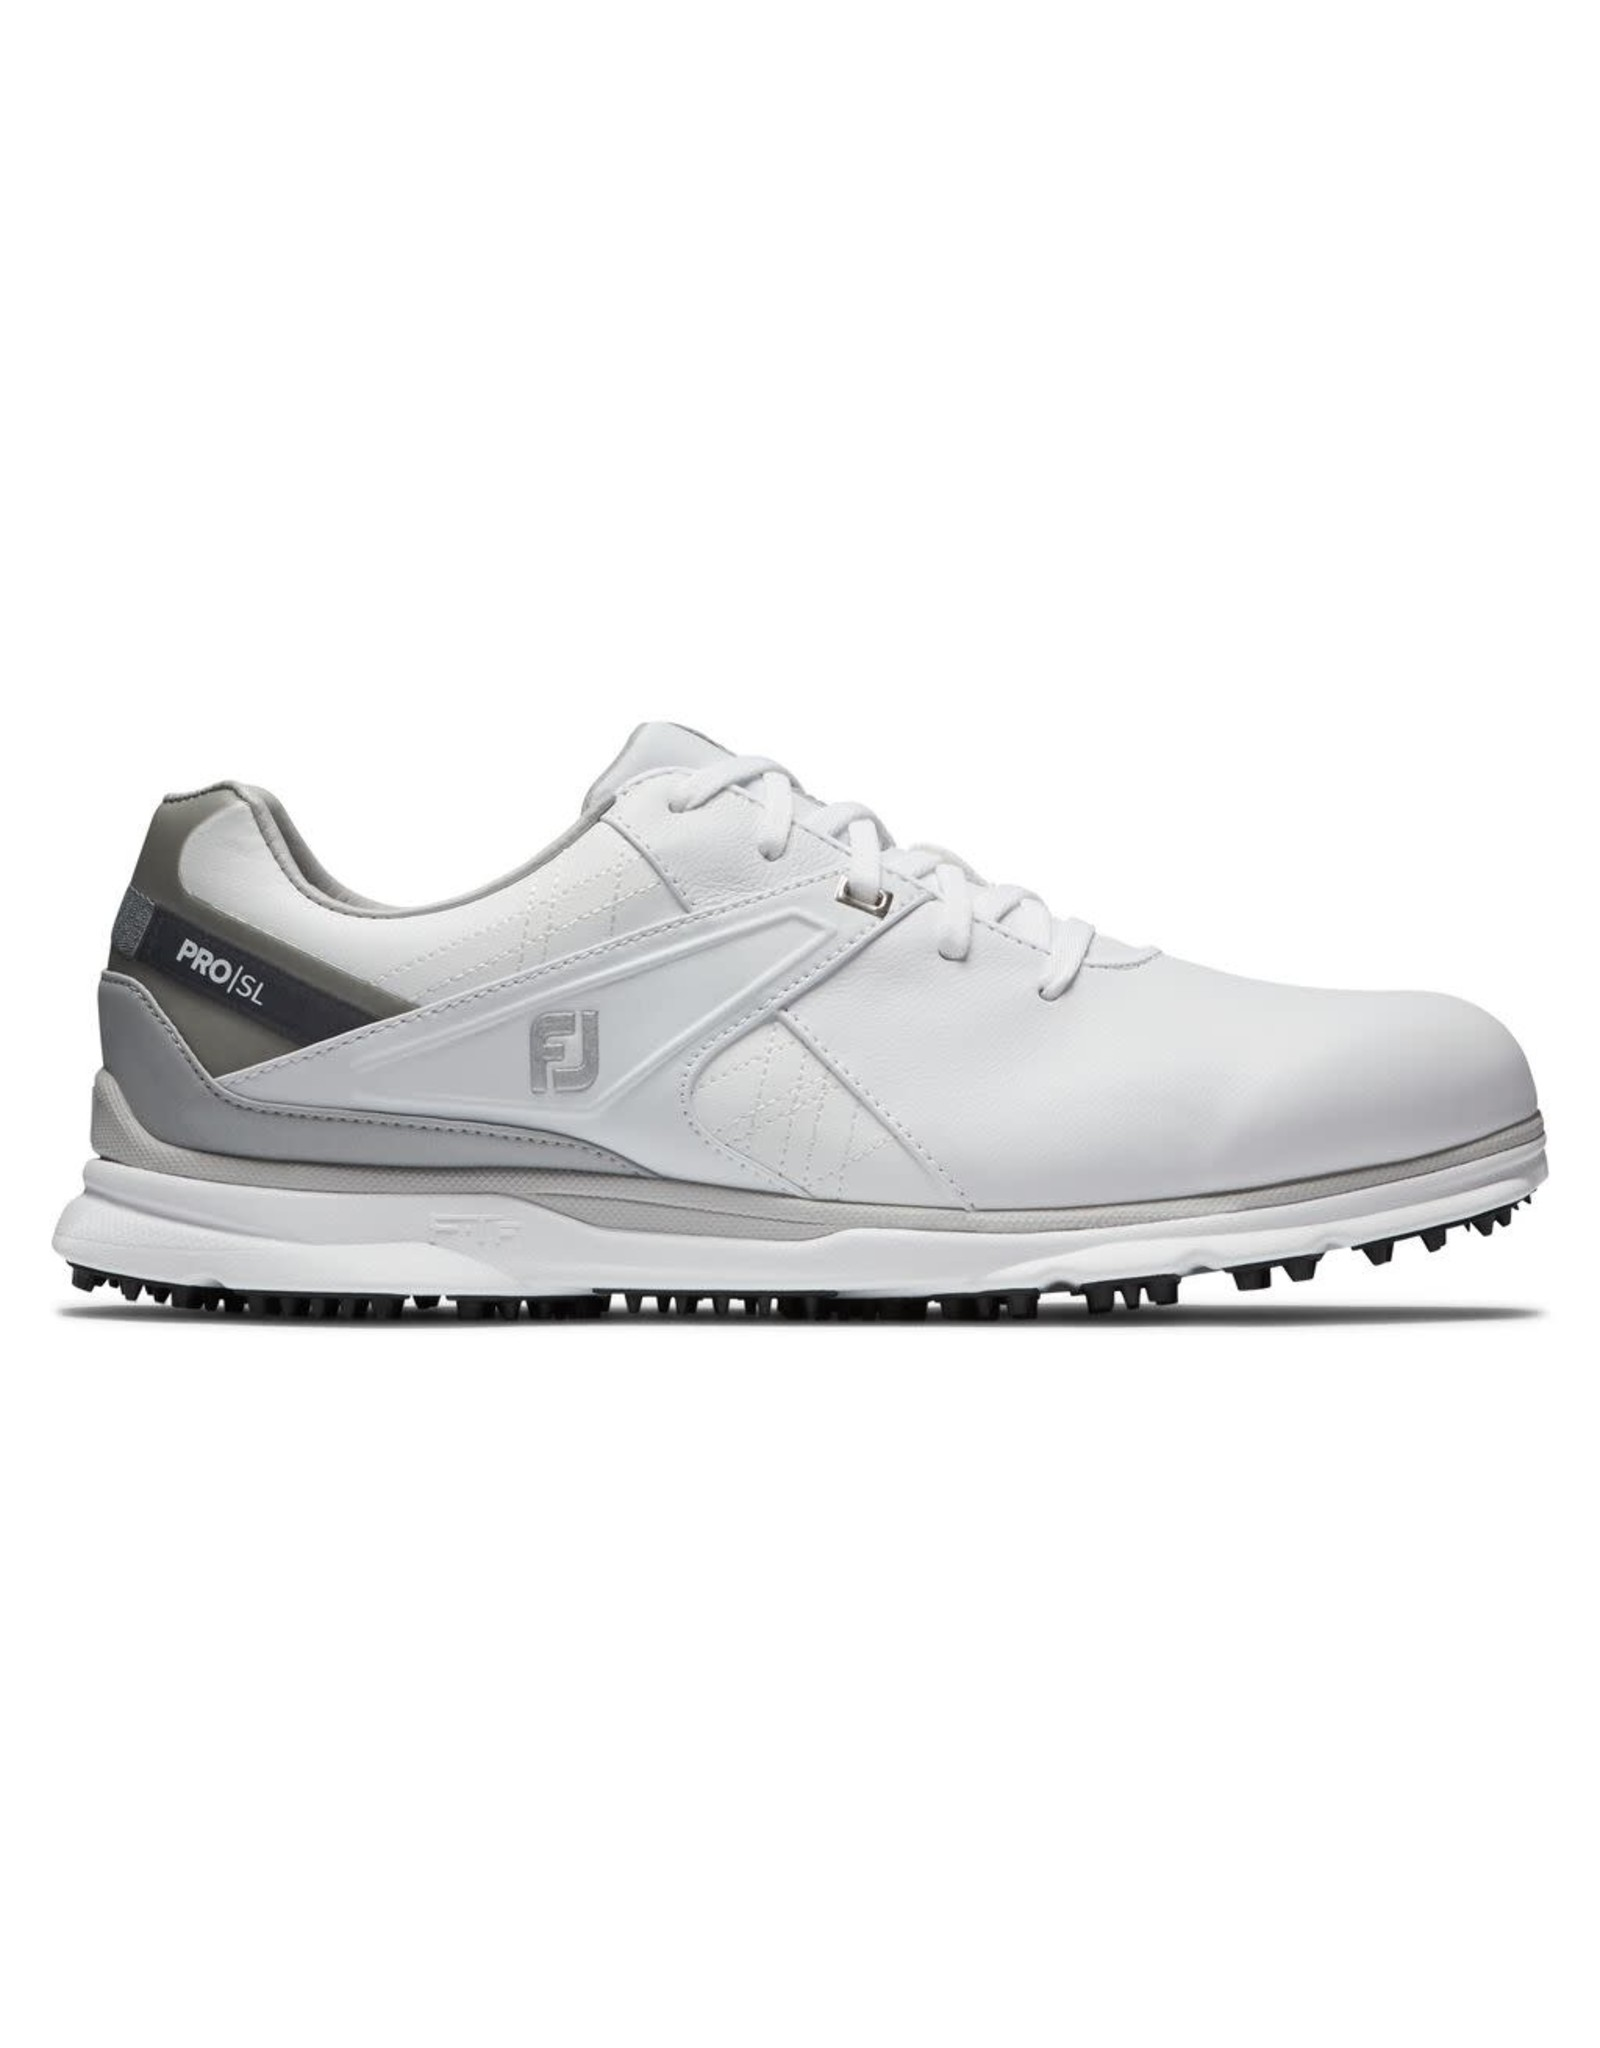 FJ FJ Pro SL White and Grey